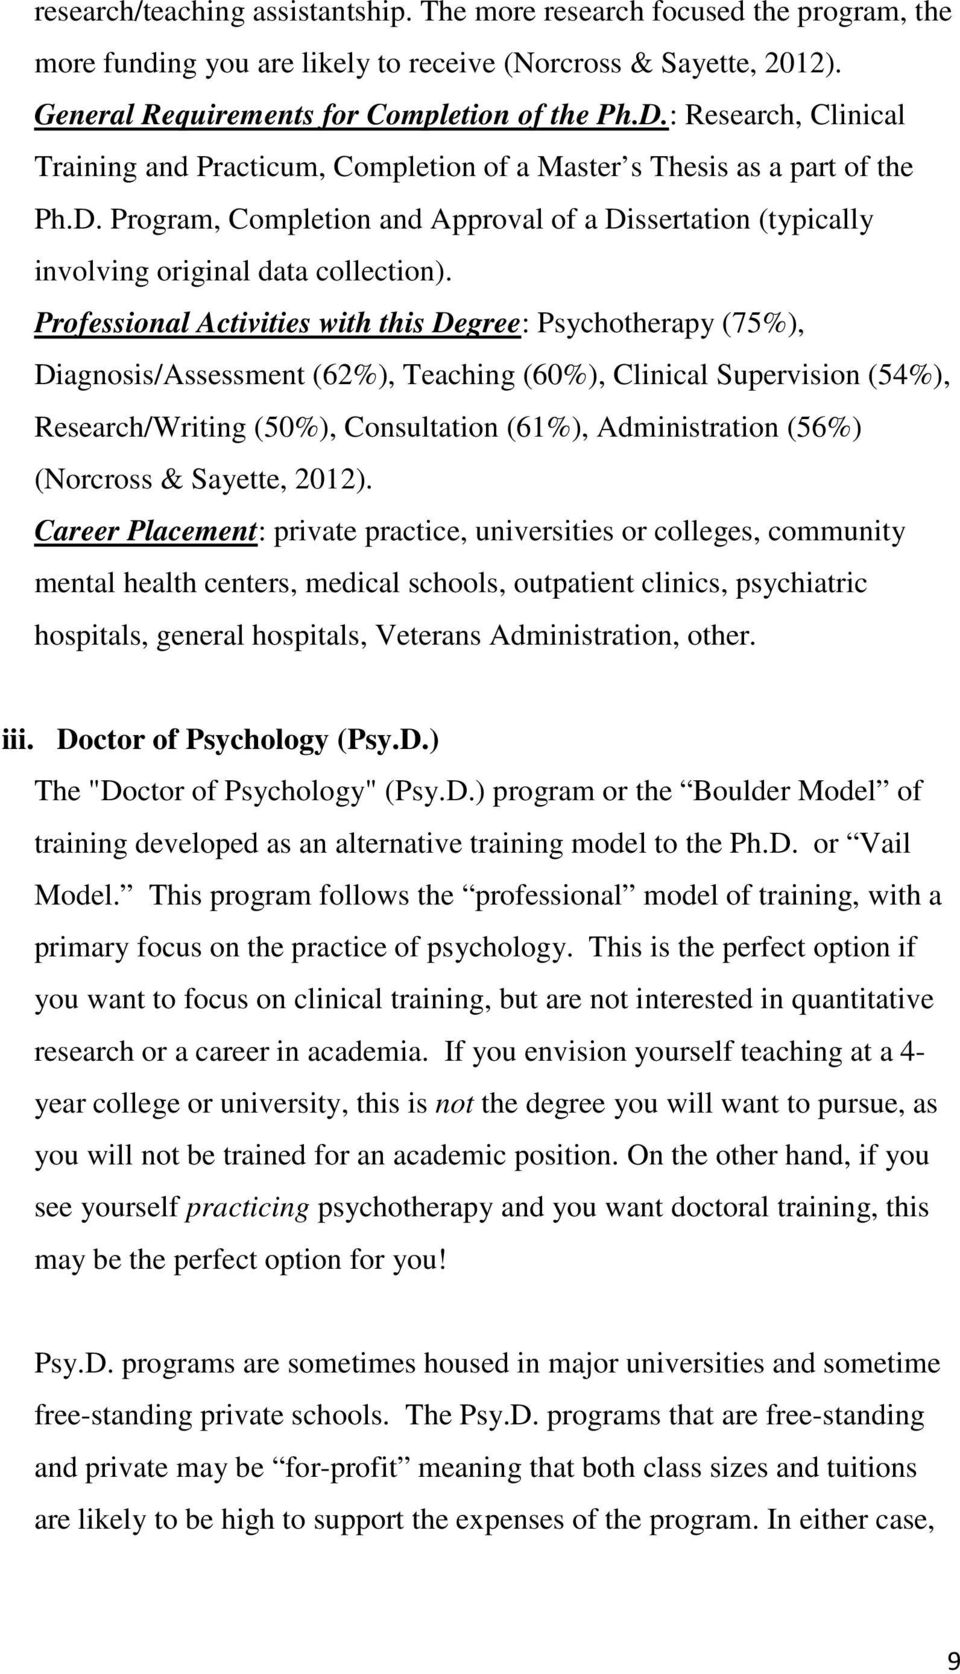 Professional Activities with this Degree: Psychotherapy (75%), Diagnosis/Assessment (62%), Teaching (60%), Clinical Supervision (54%), Research/Writing (50%), Consultation (61%), Administration (56%)